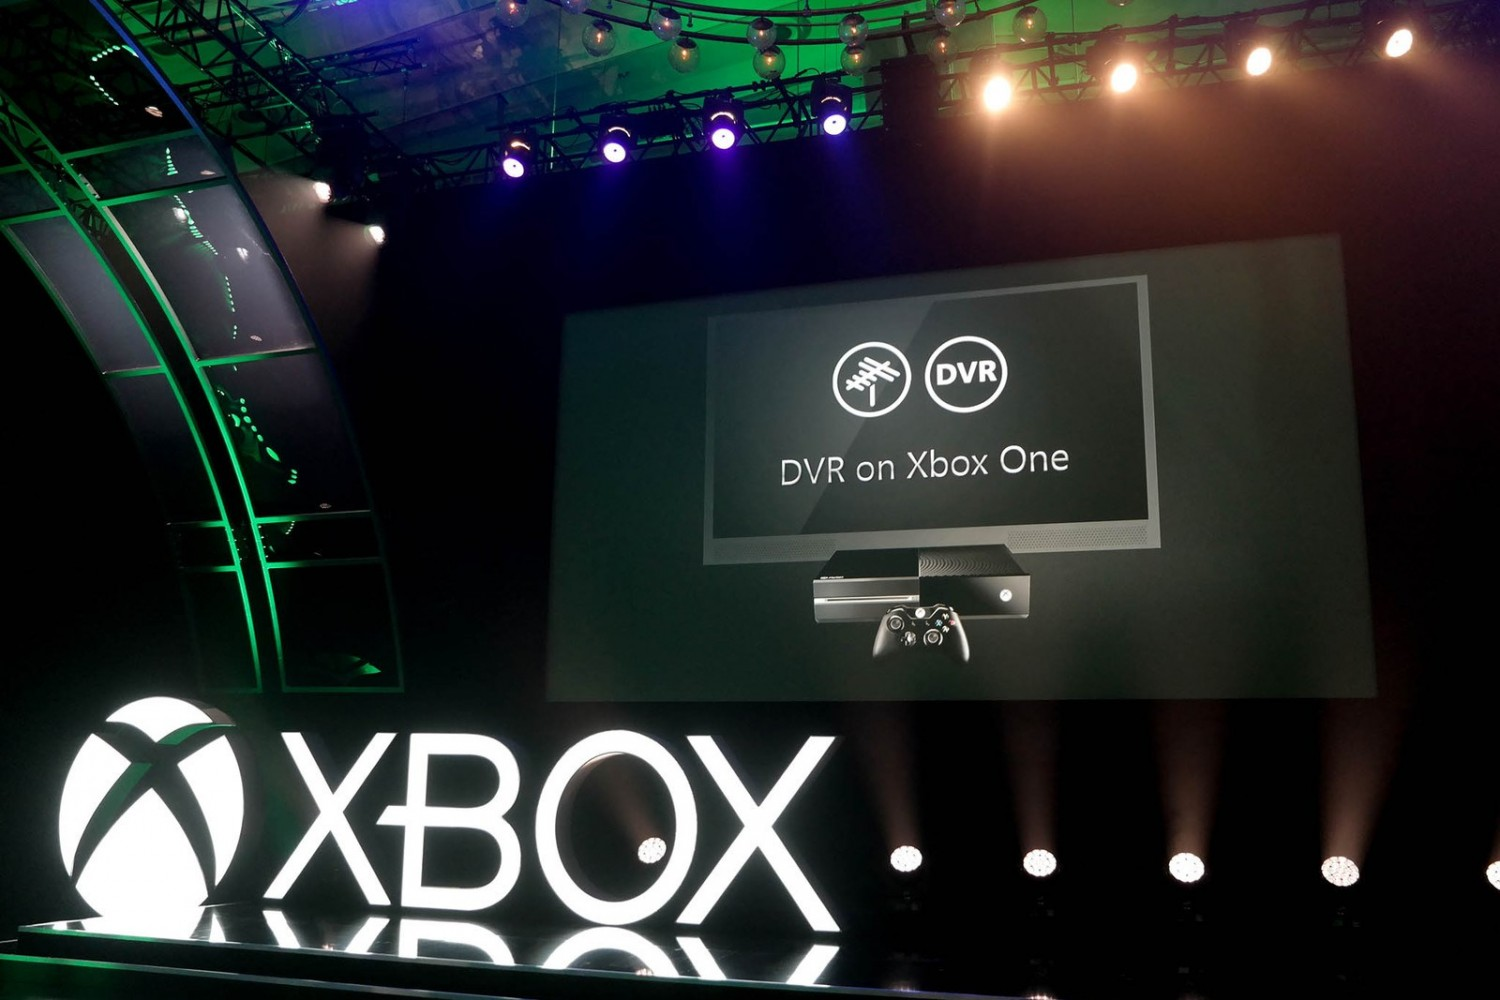 Microsoft just pulled the plug on the Xbox One TV DVR feature